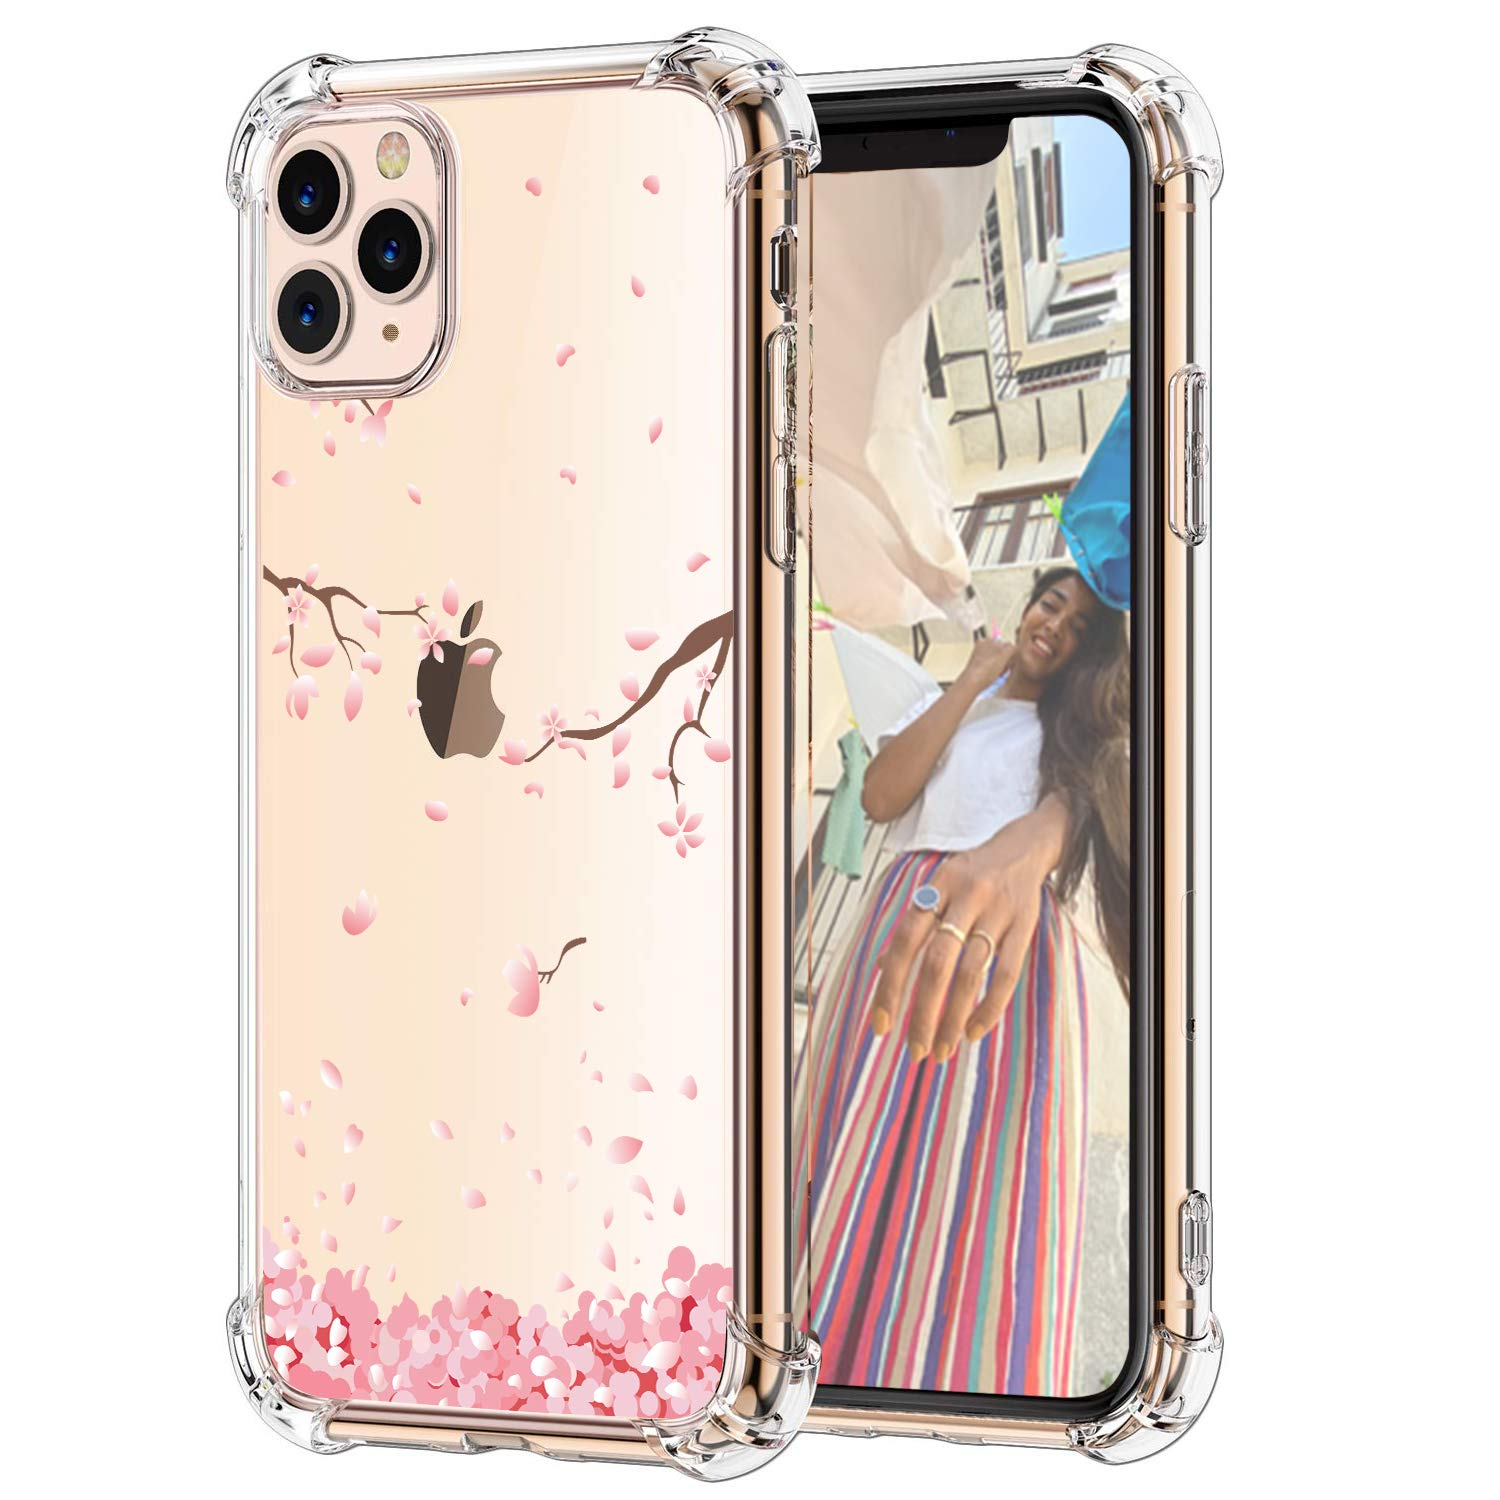 """Hepix Peach Petals Floral iPhone 11 Pro Case Pink Flowers 11 Pro Clear Cases, Crystal Soft Flexible TPU Phone Cover with Protective Bumpers Anti-Scratch Shock Absorbing for iPhone 11 Pro (5.8"""") 2019"""